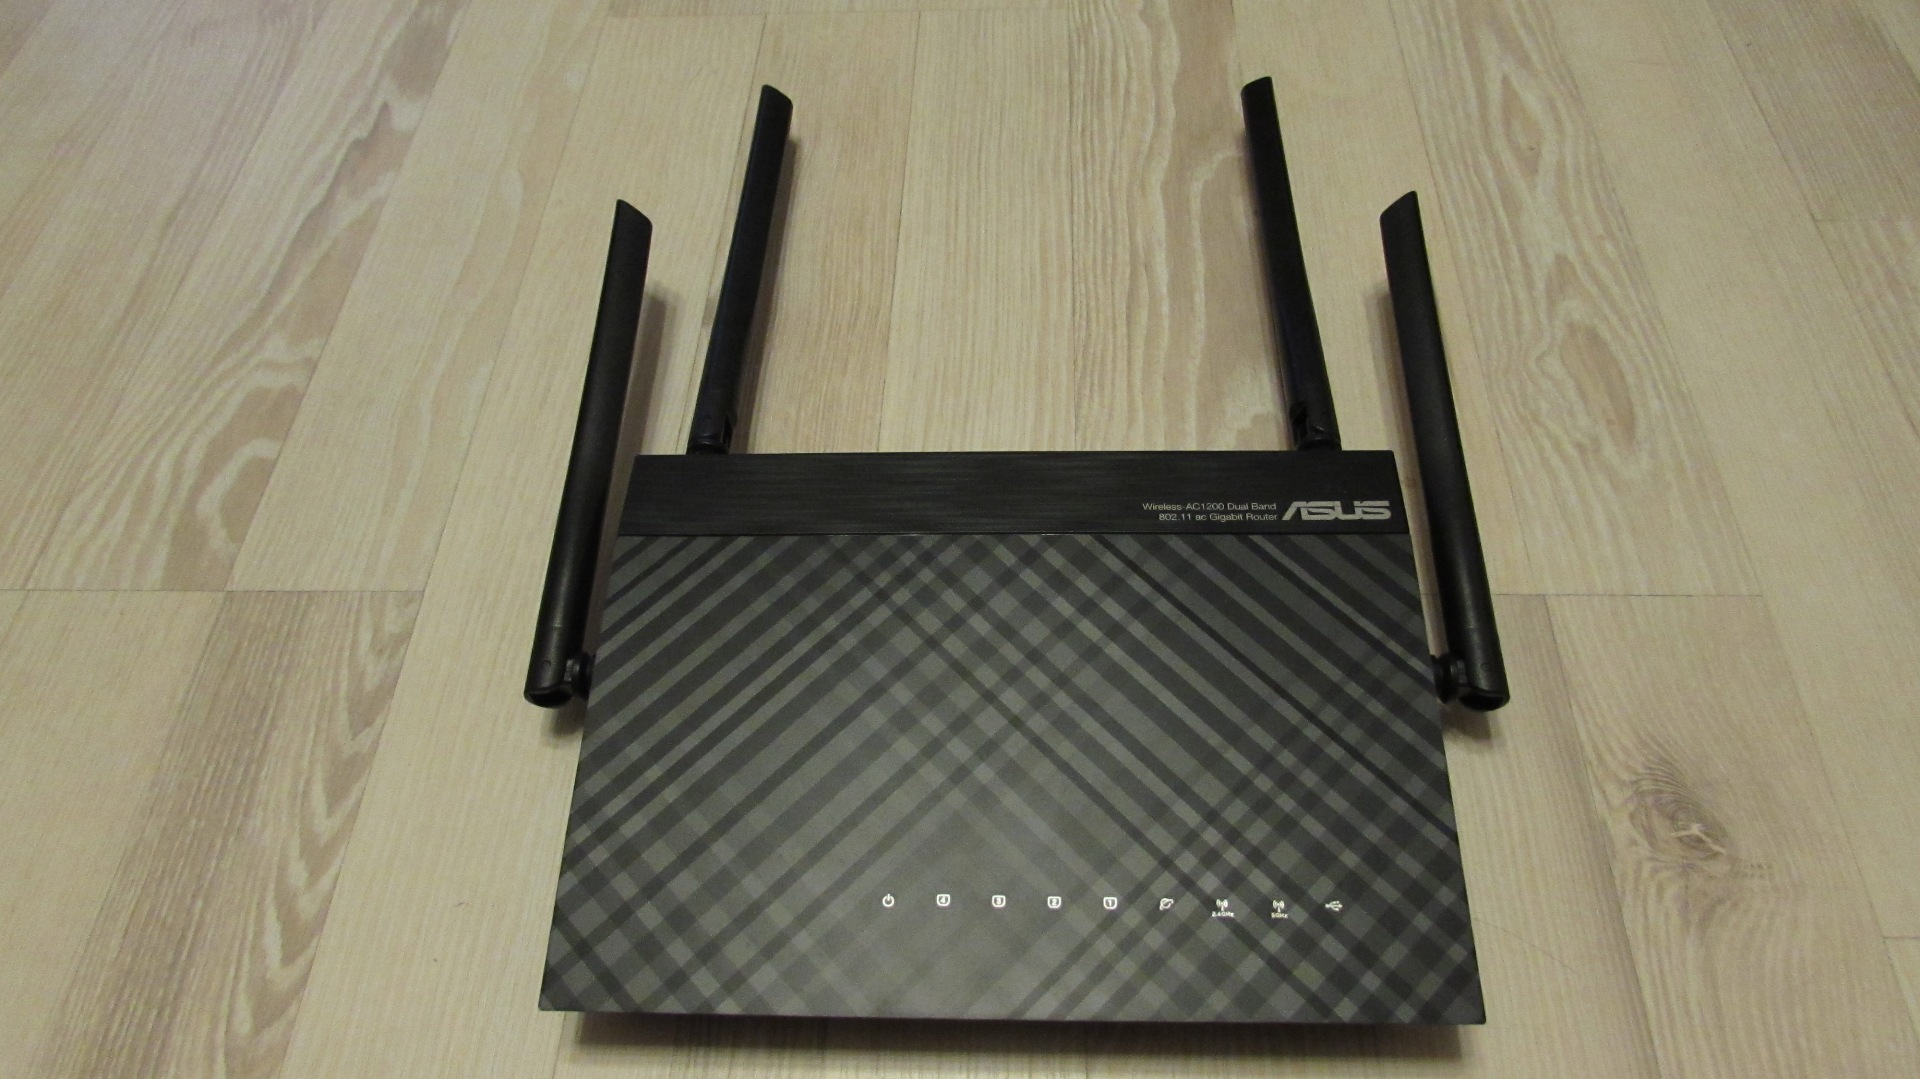 openlinksys.info/images/rt-ac1200g/IMG_0589.JPG